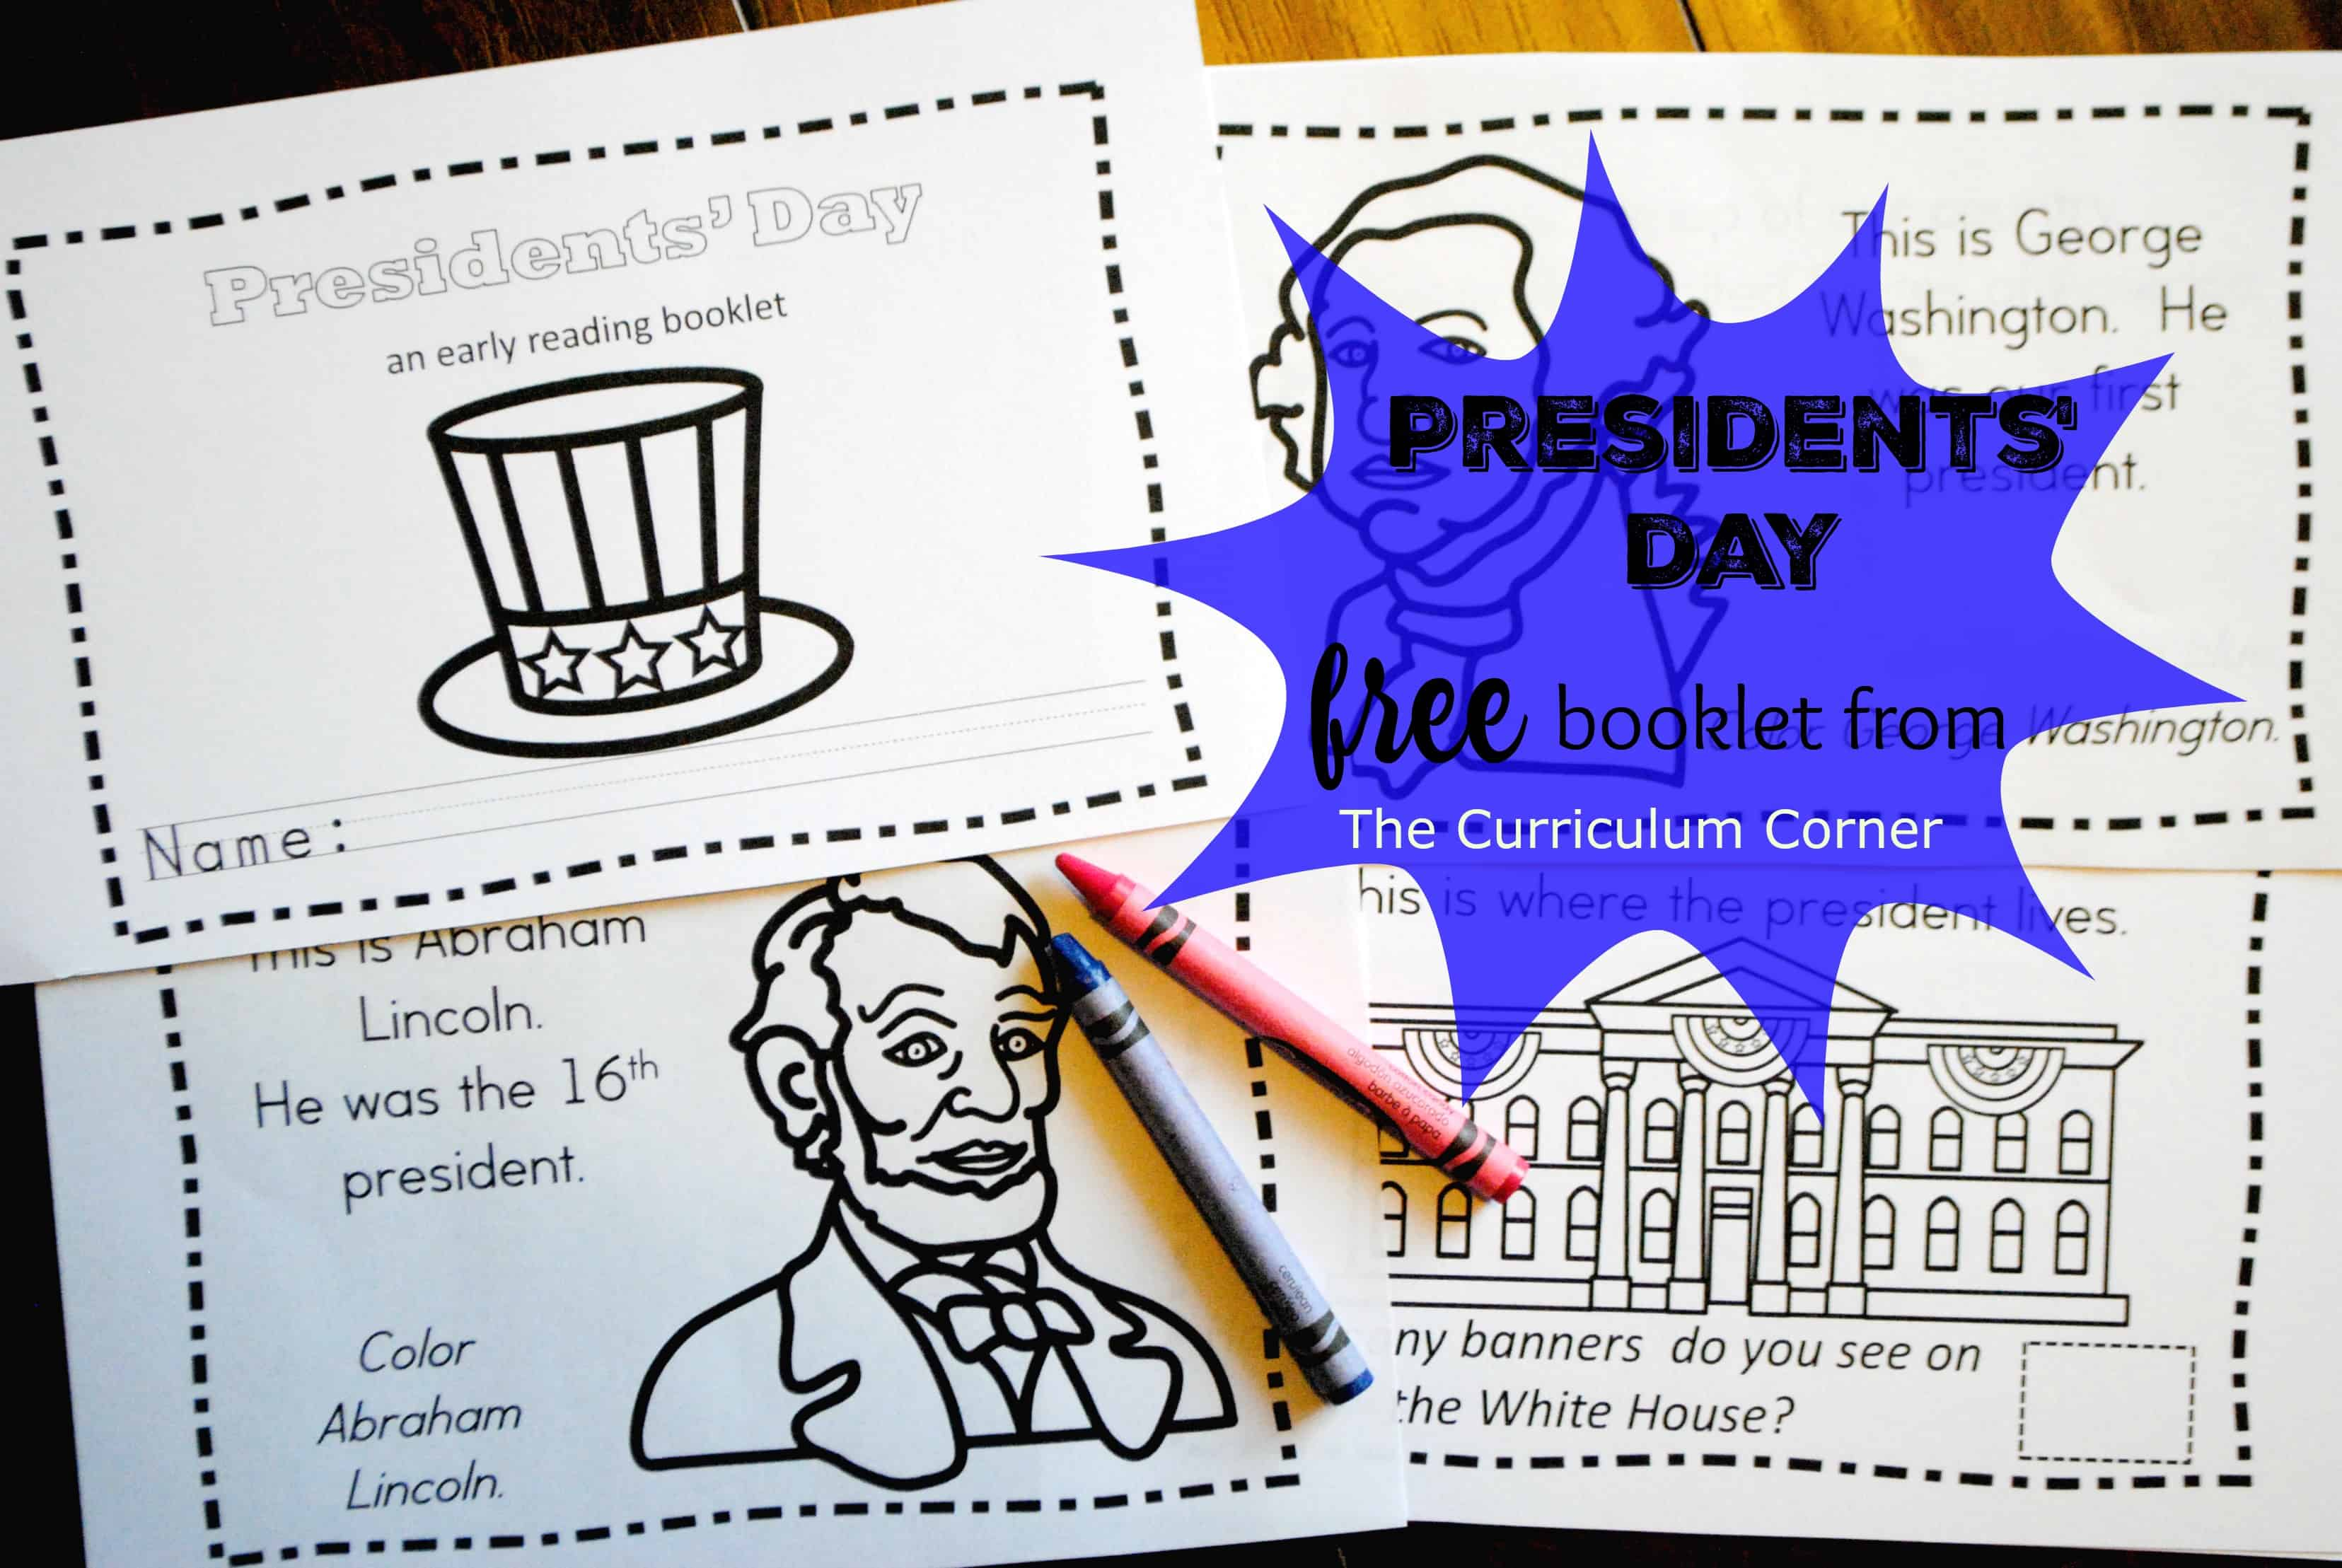 Presidents' Day Booklet